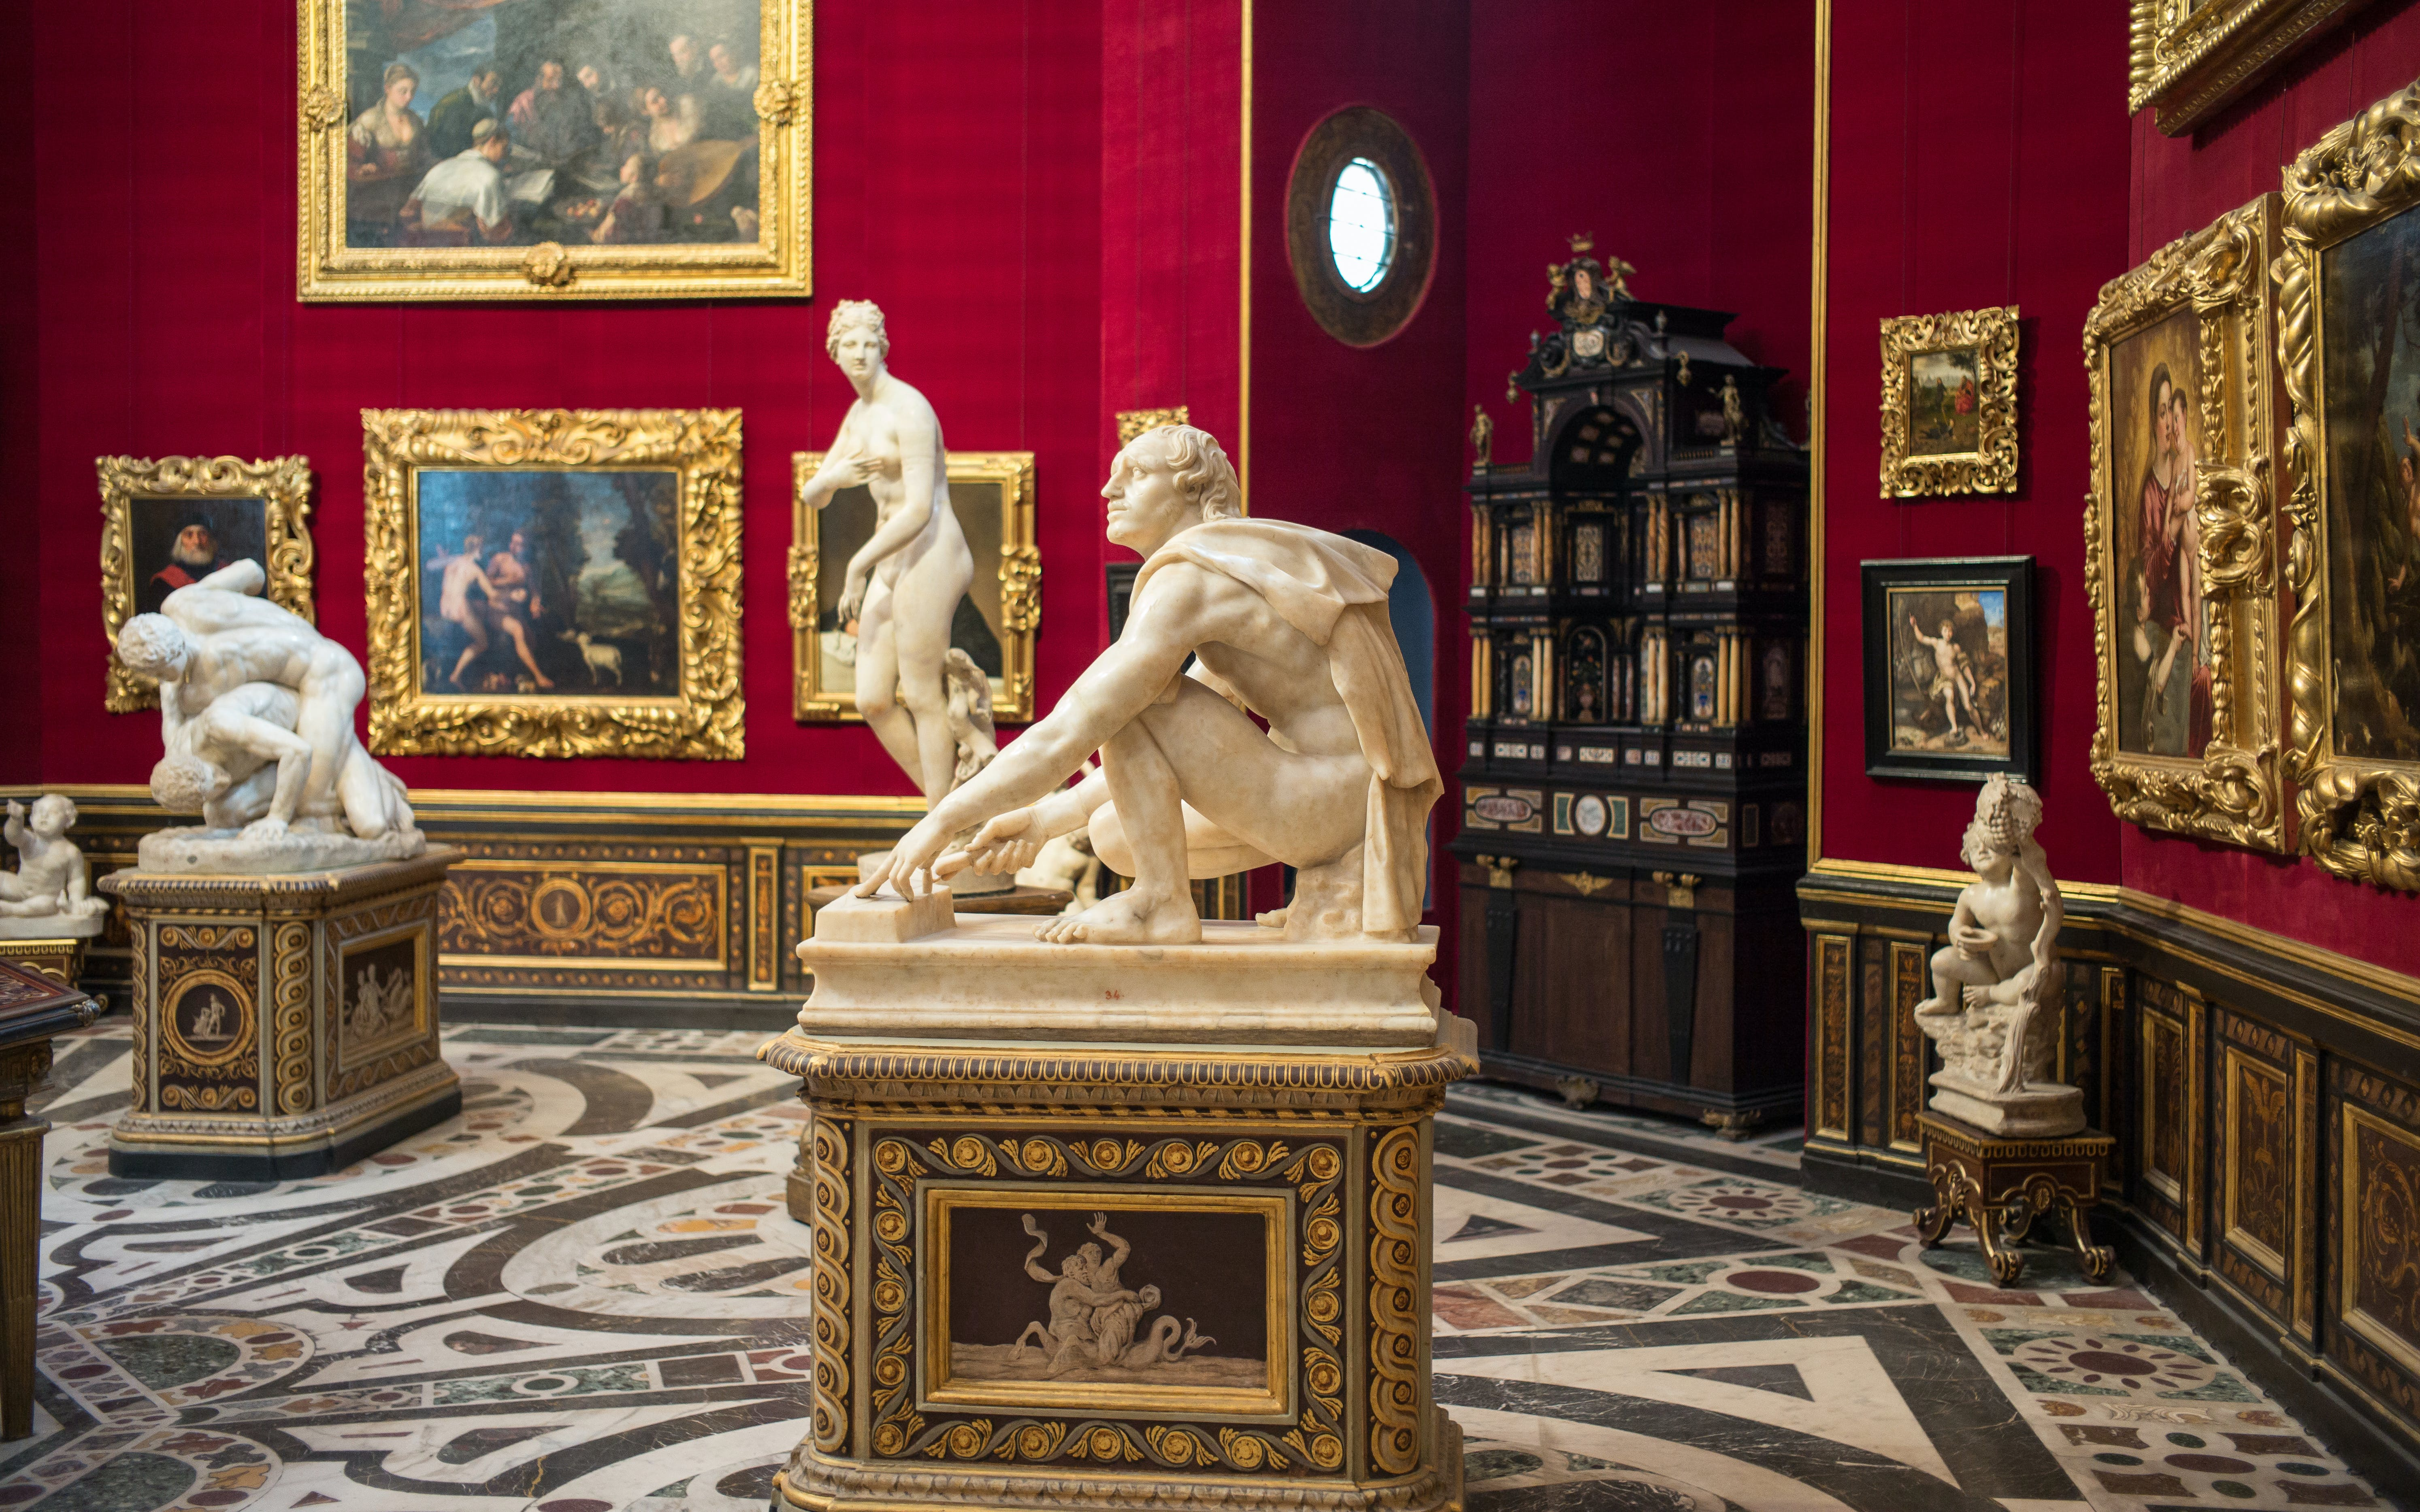 uffizi gallery guided tour with skip the line tickets-2